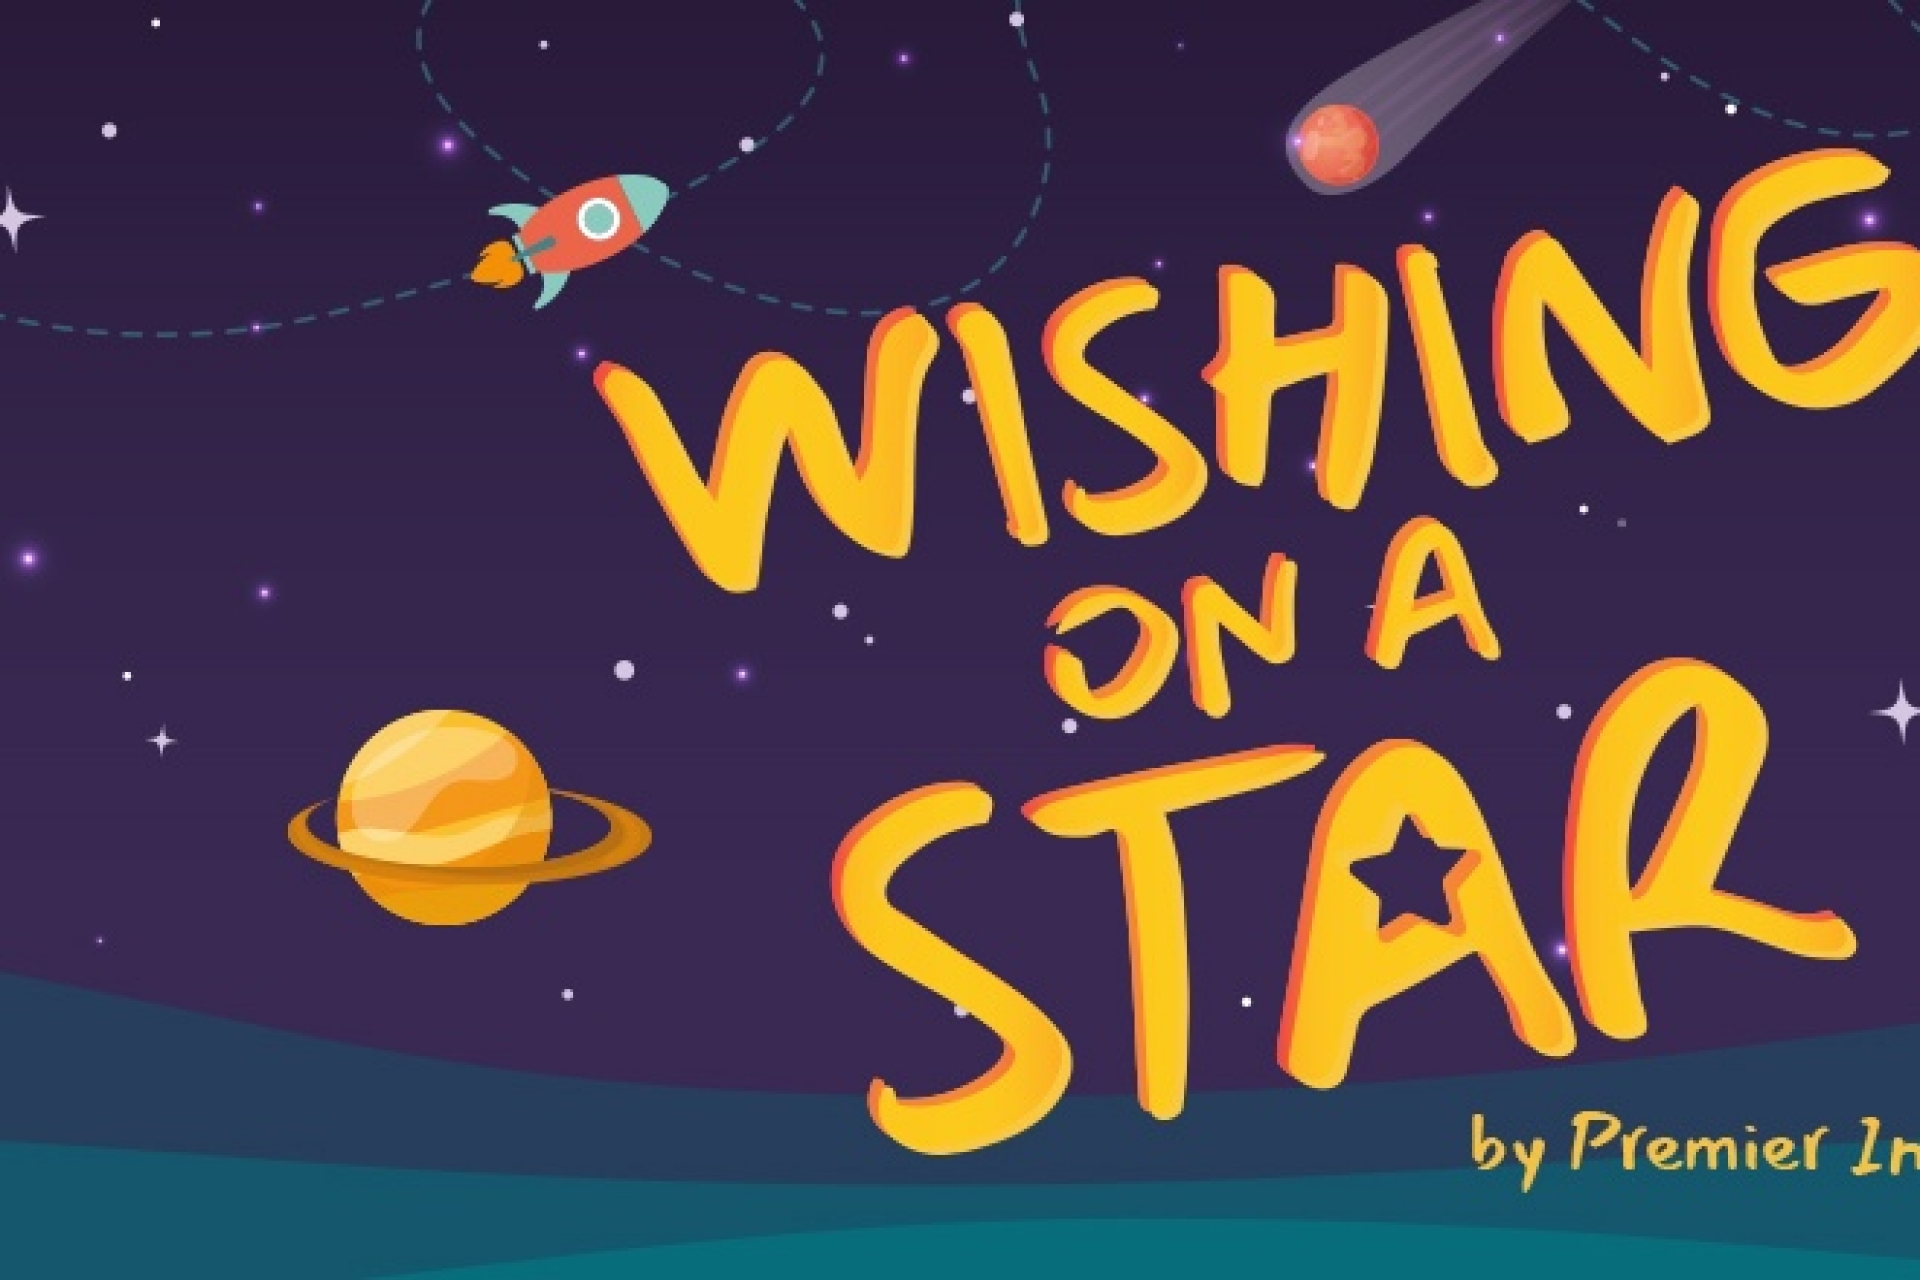 Premier Inn encourages reading with children with Wishing on a Star book launch